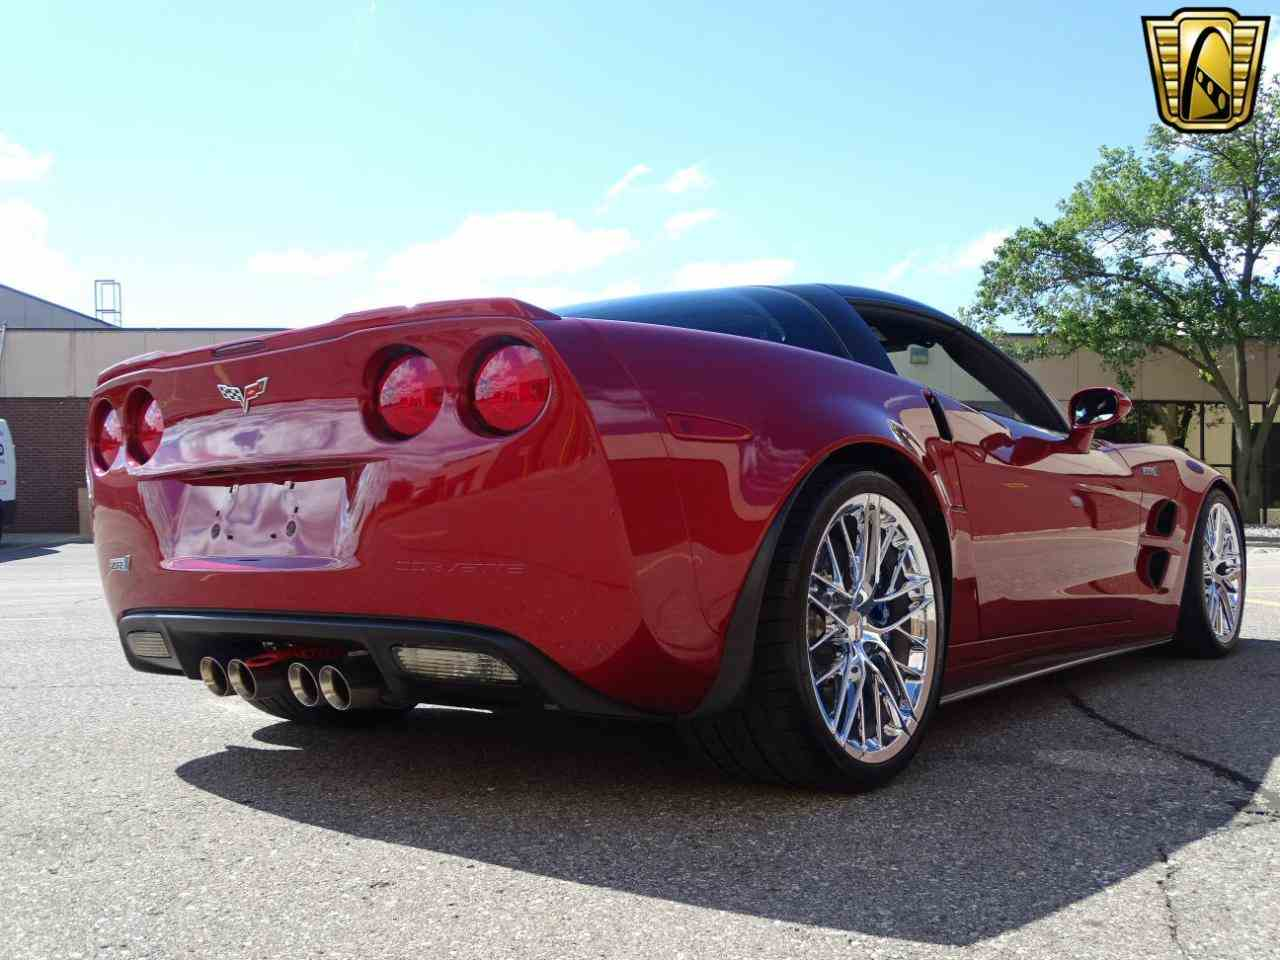 Large Picture of 2010 Chevrolet Corvette located in Michigan Offered by Gateway Classic Cars - Detroit - L8QM